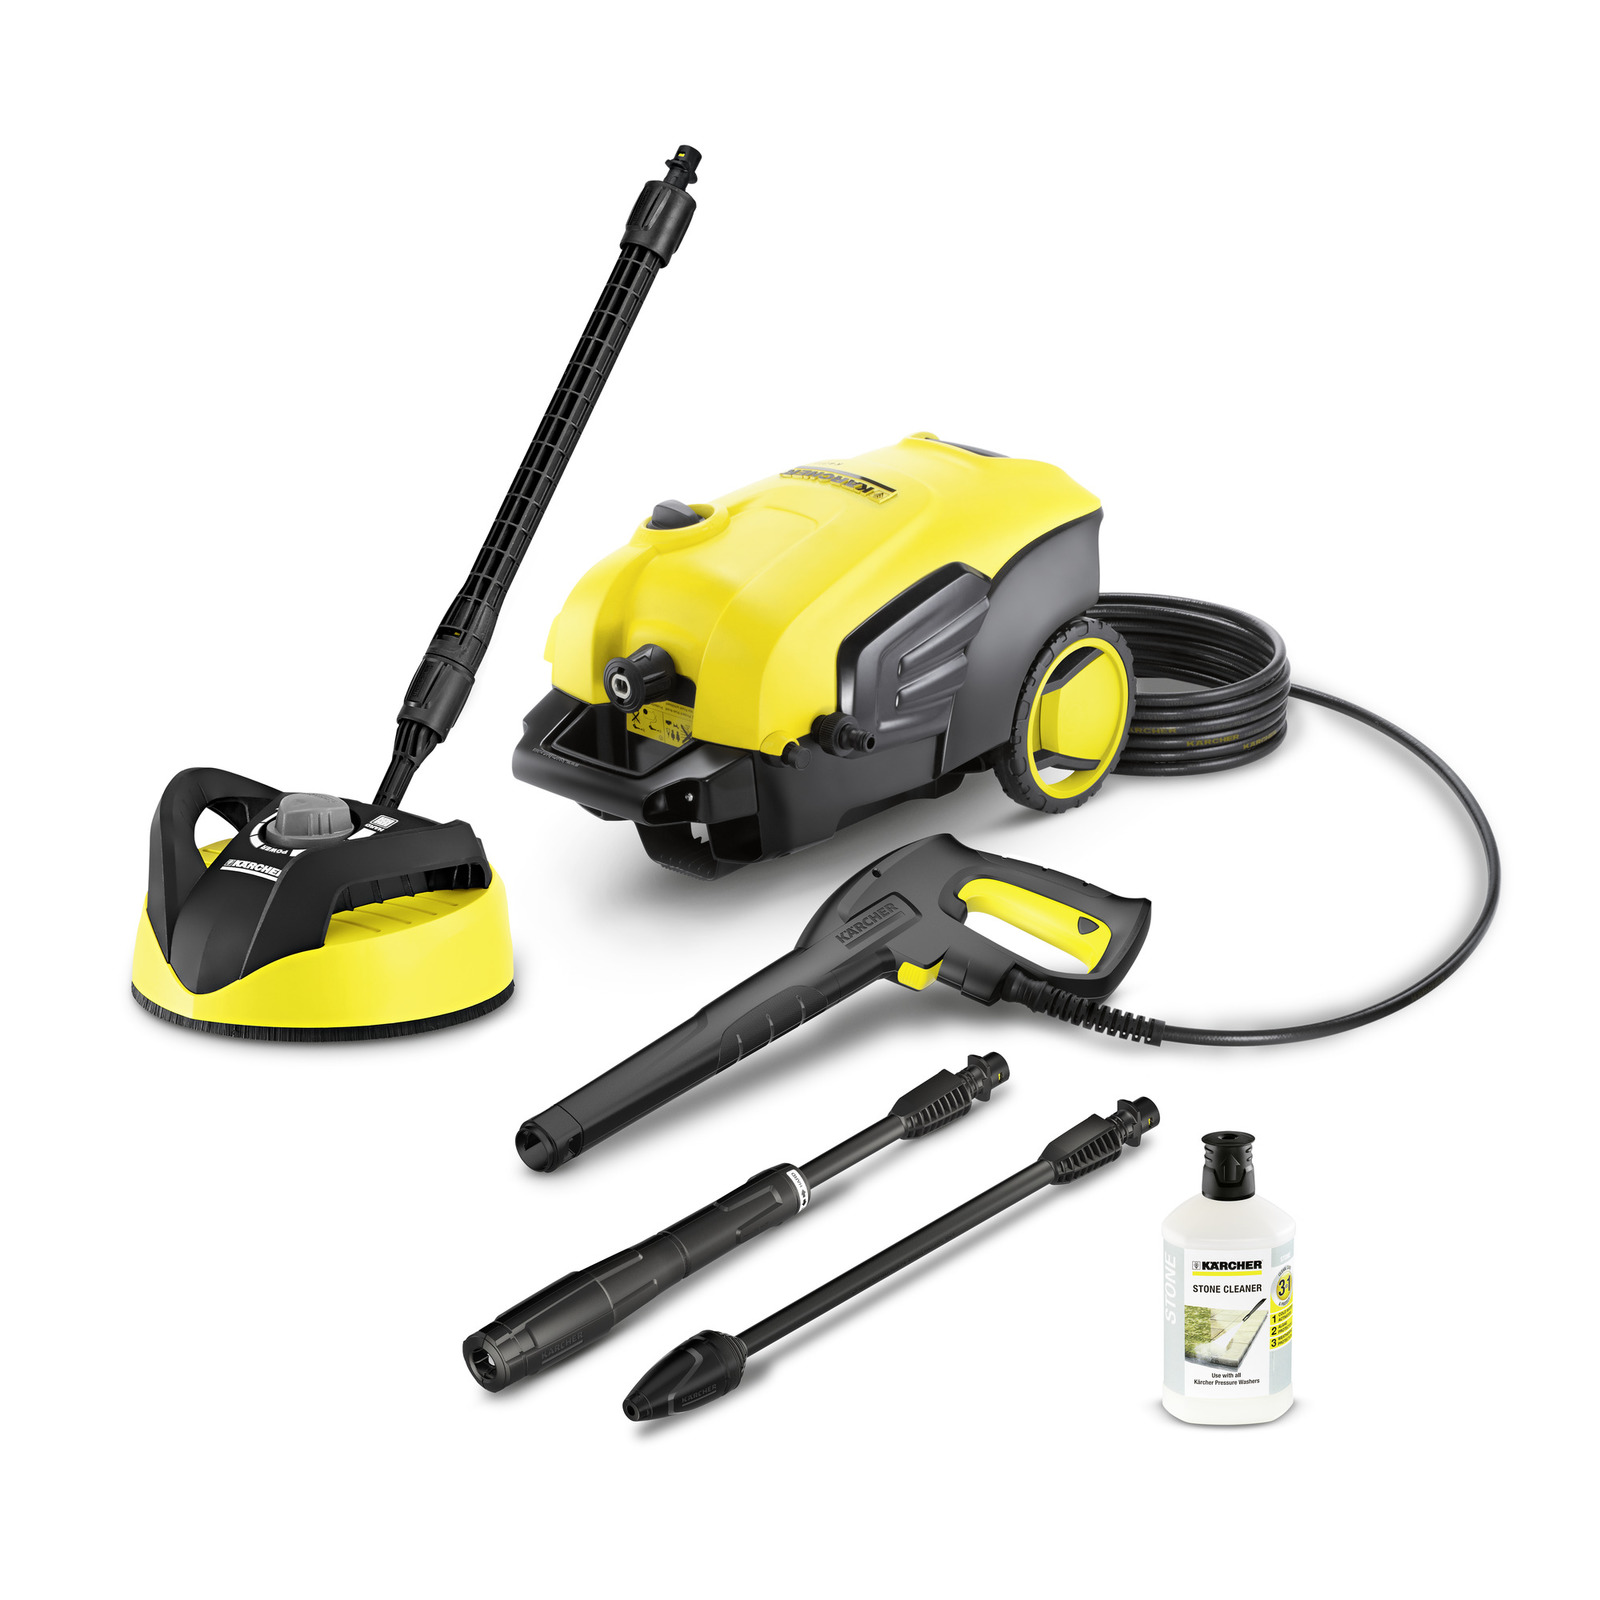 k5 compact home t350 pressure washer k rcher uk rh kaercher com Clip Art User Guide Online User Guide